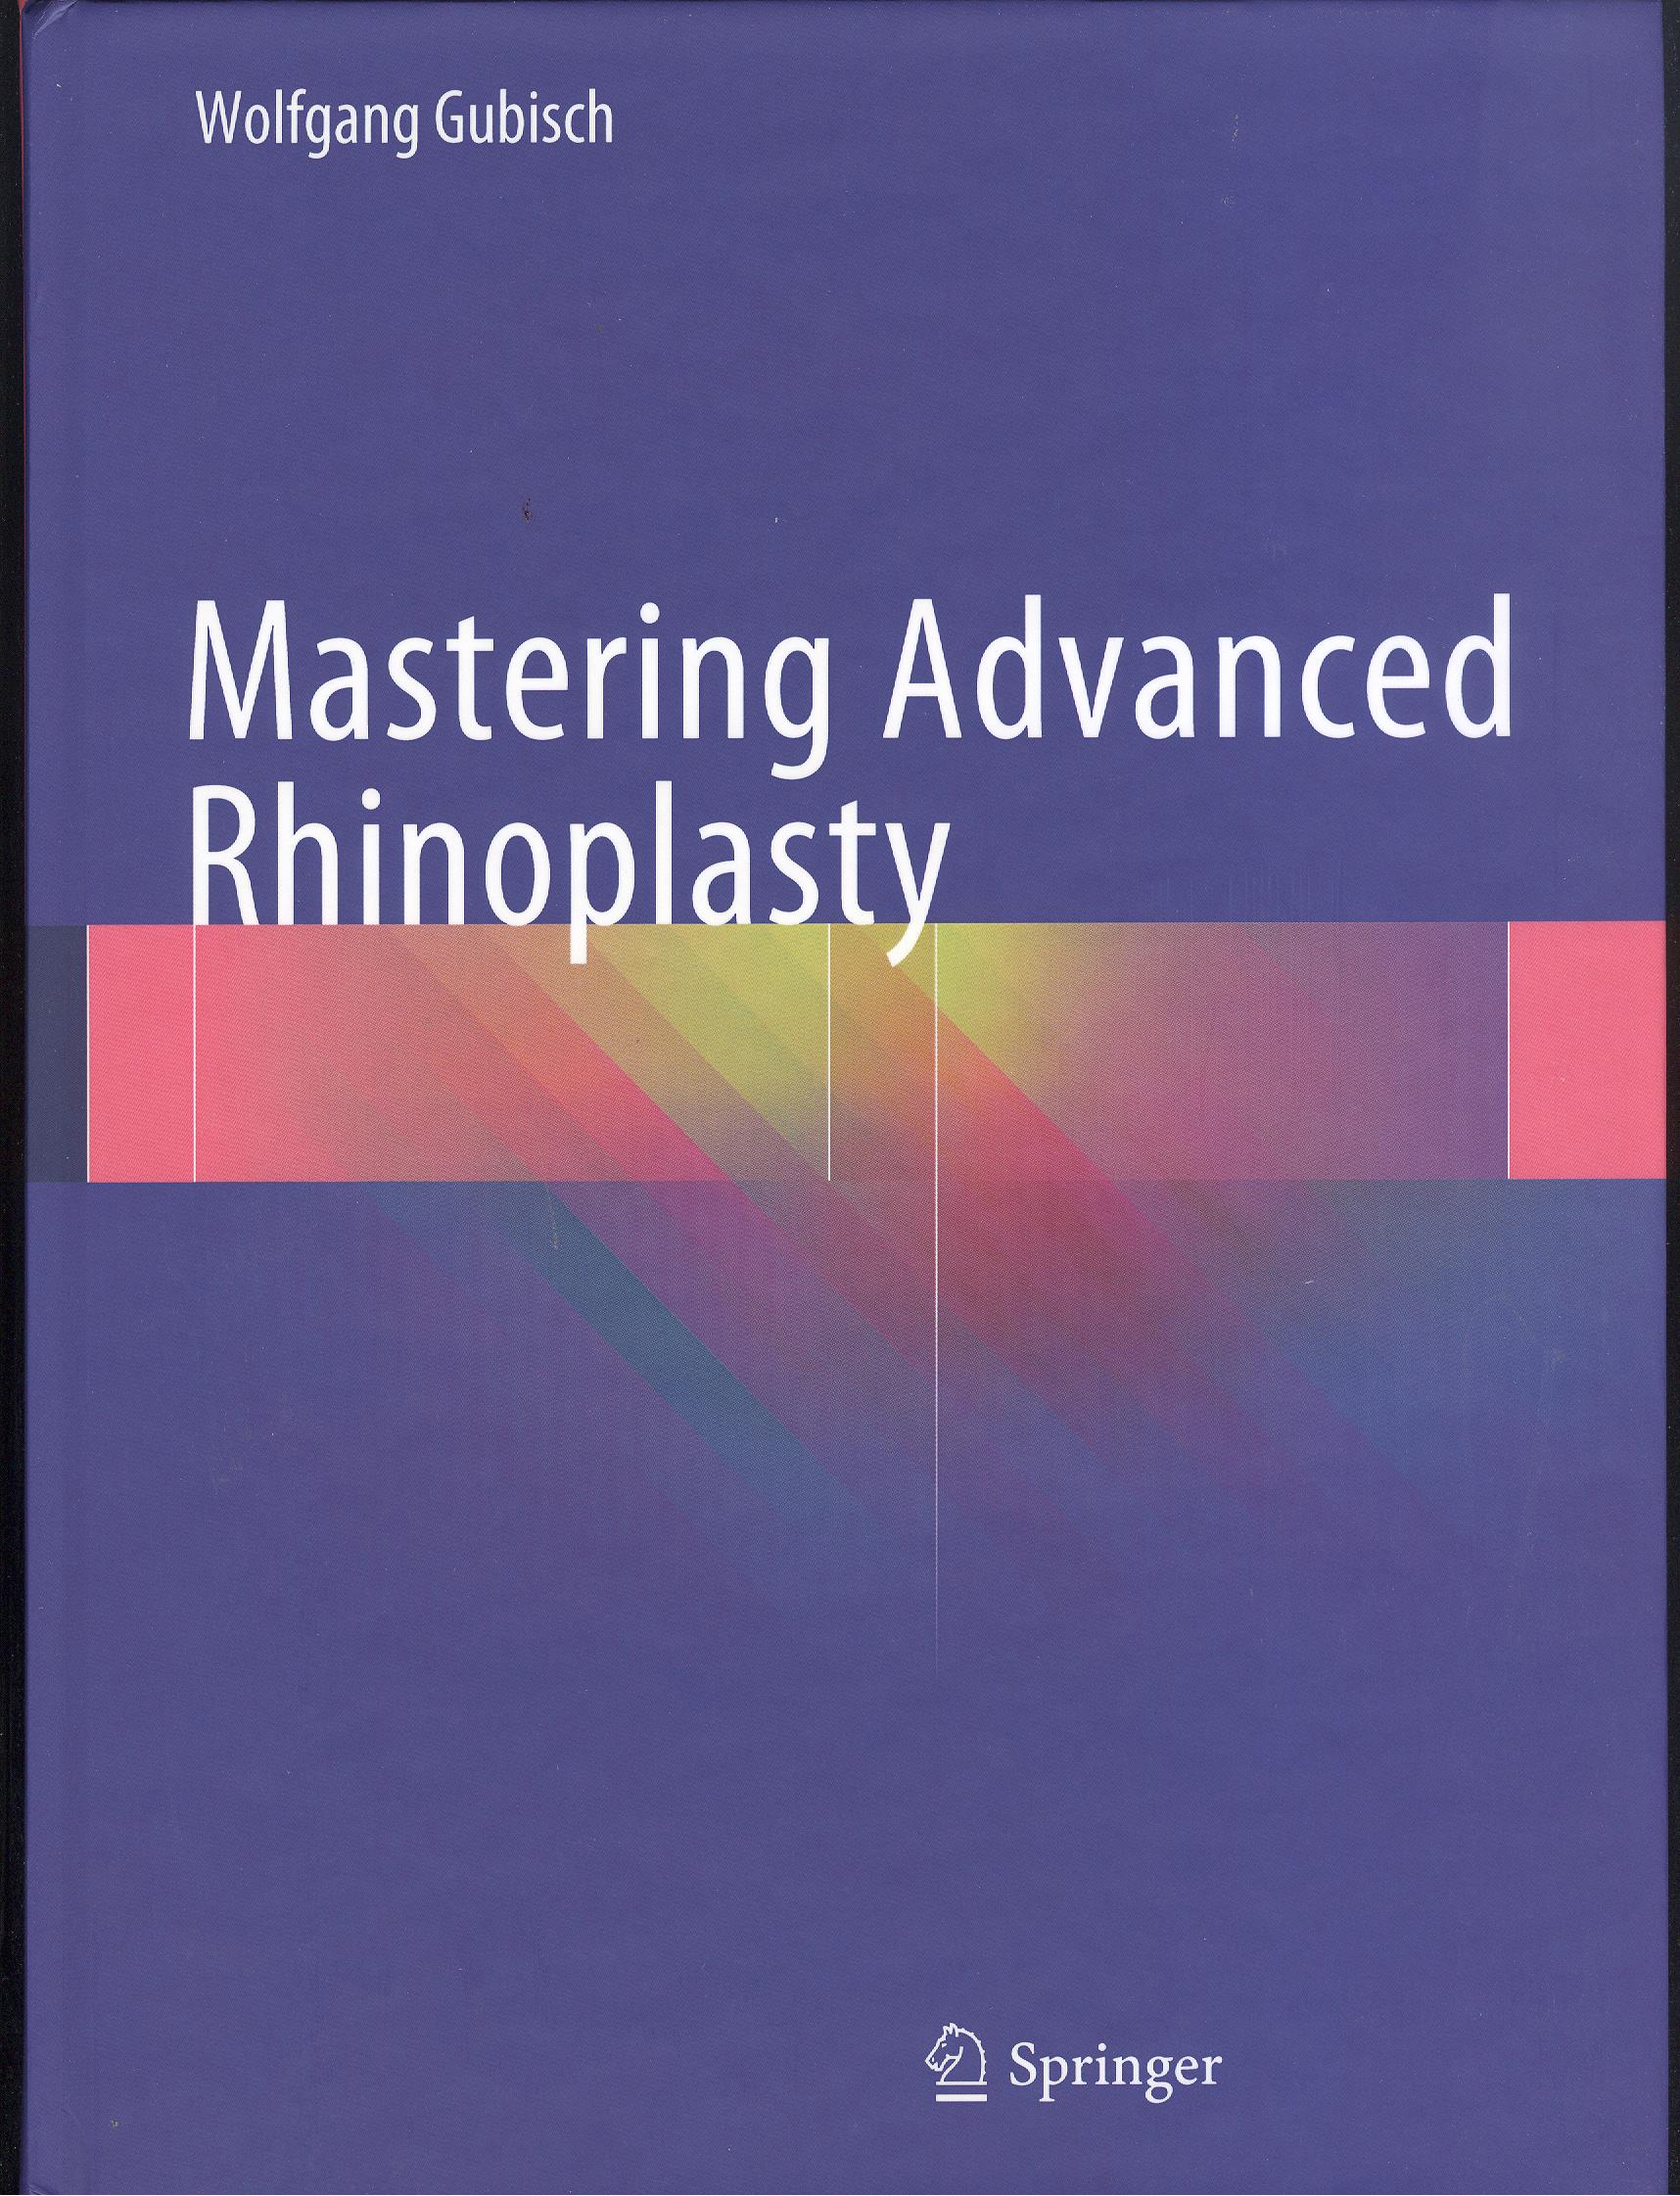 Mastering Advanced Rhinoplasty